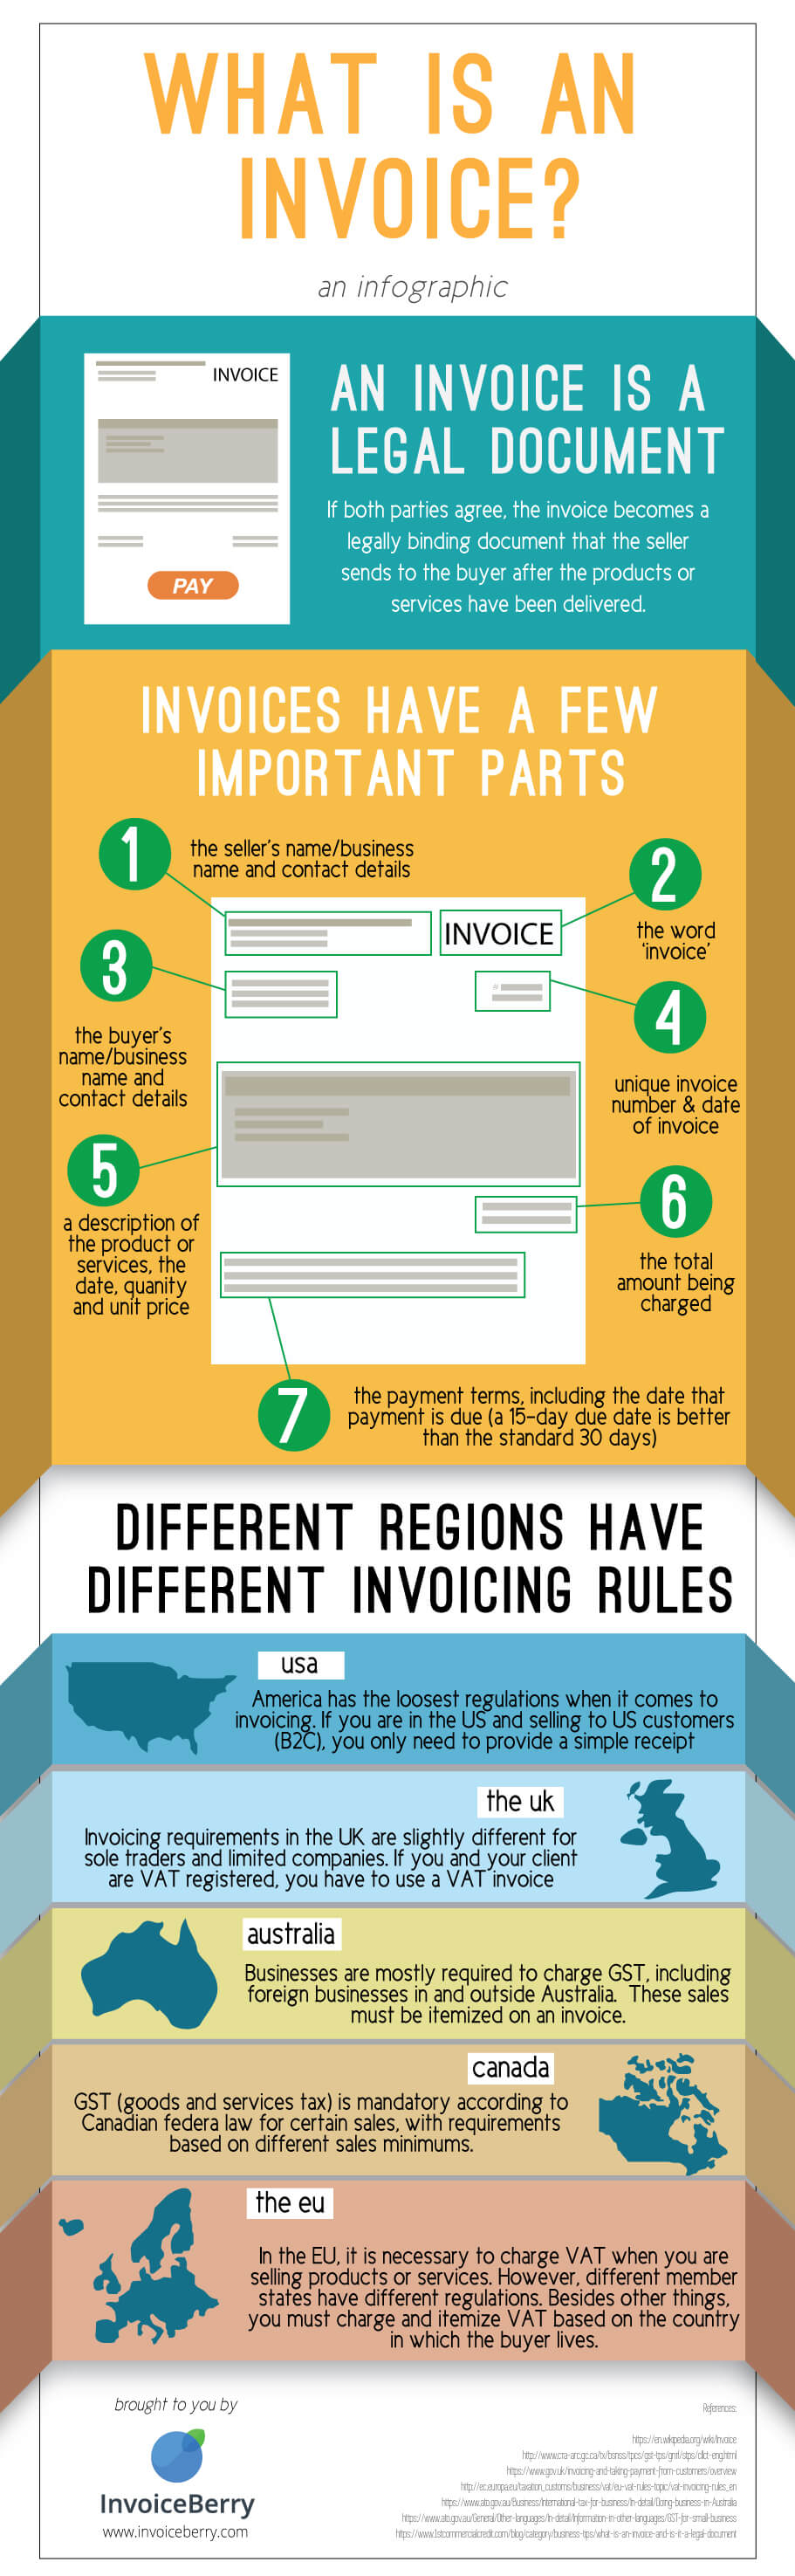 """Check out our infographic """"What is an invoice?"""" to help answer your invoicing questions"""